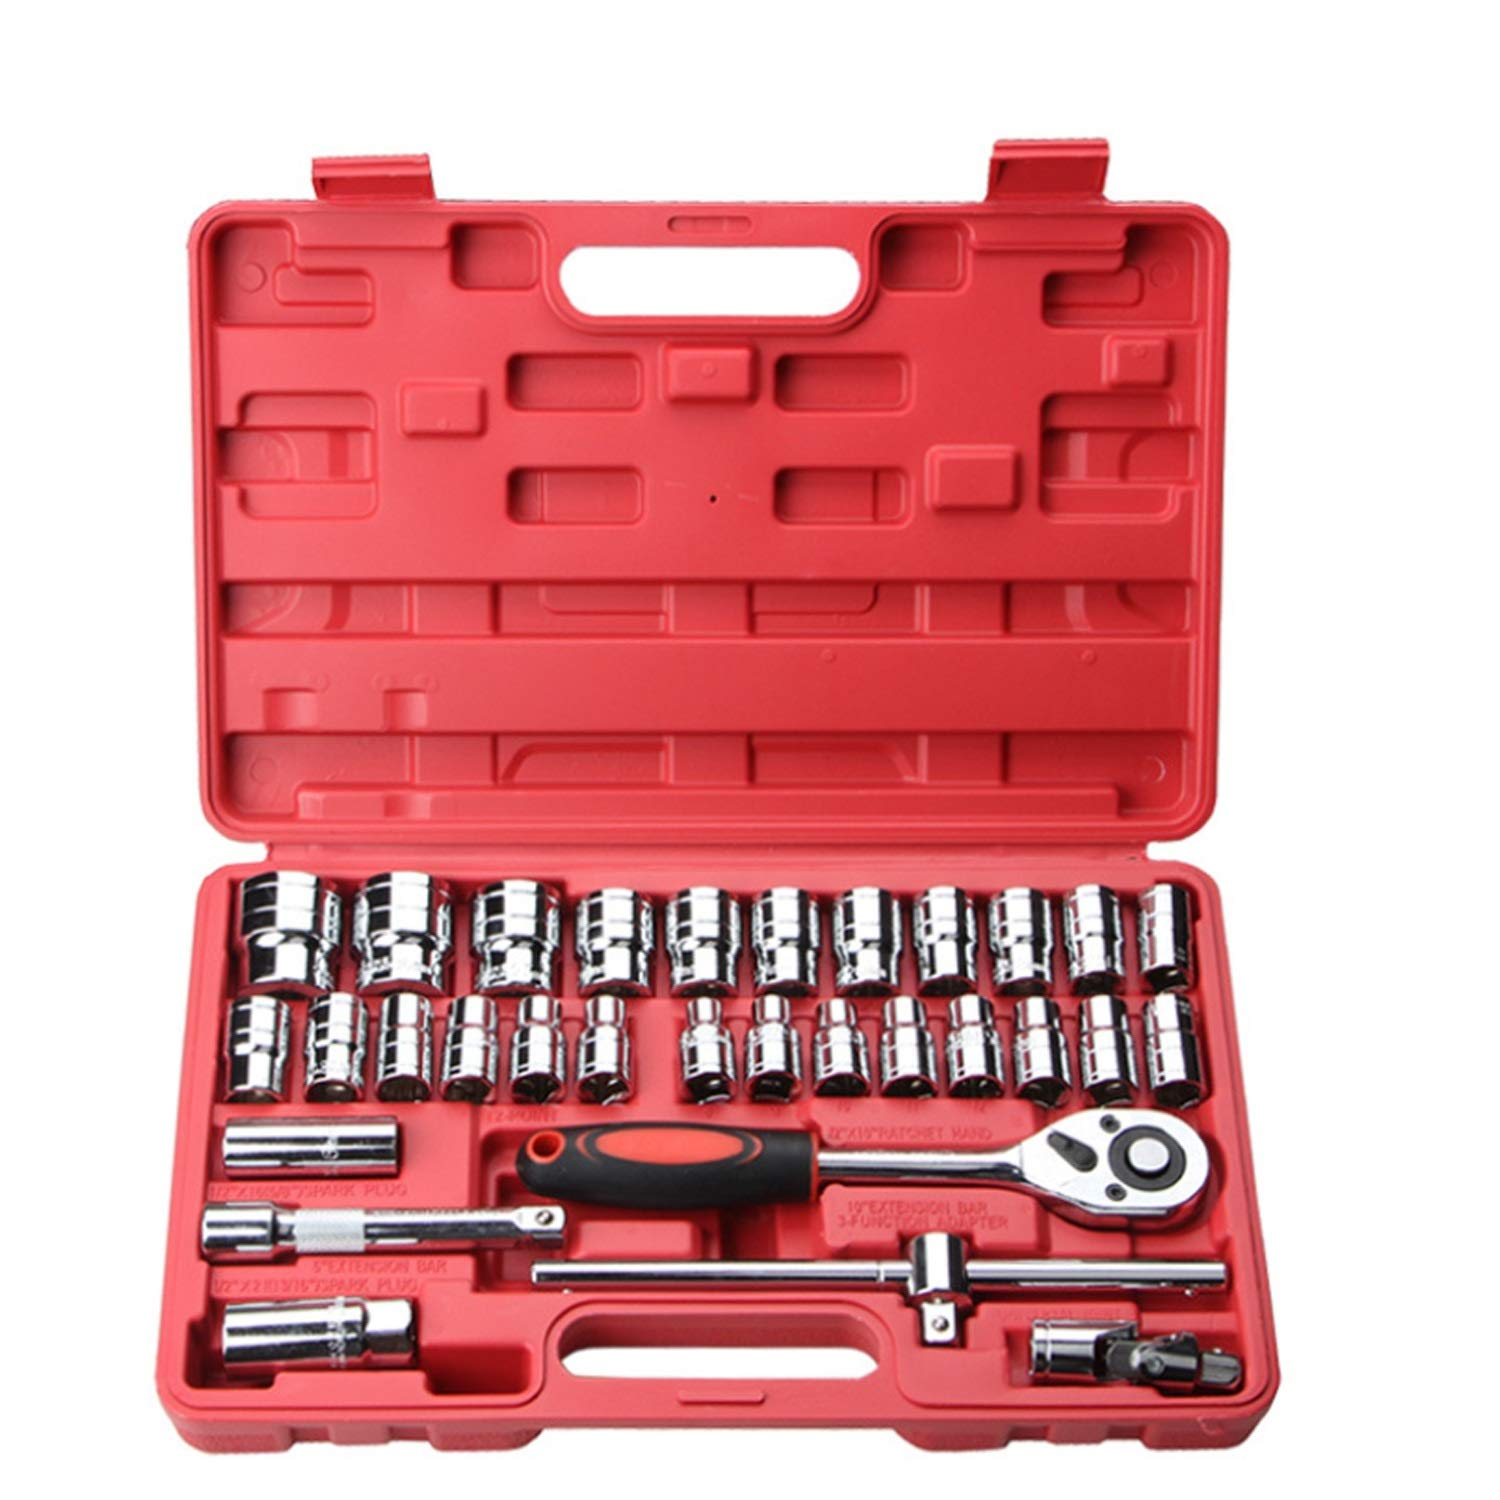 Your only family Practical Auto Repair Kit for Engine Repair, Tires, Etc. Auto Repair Combination 32-Piece Durable by Your only family